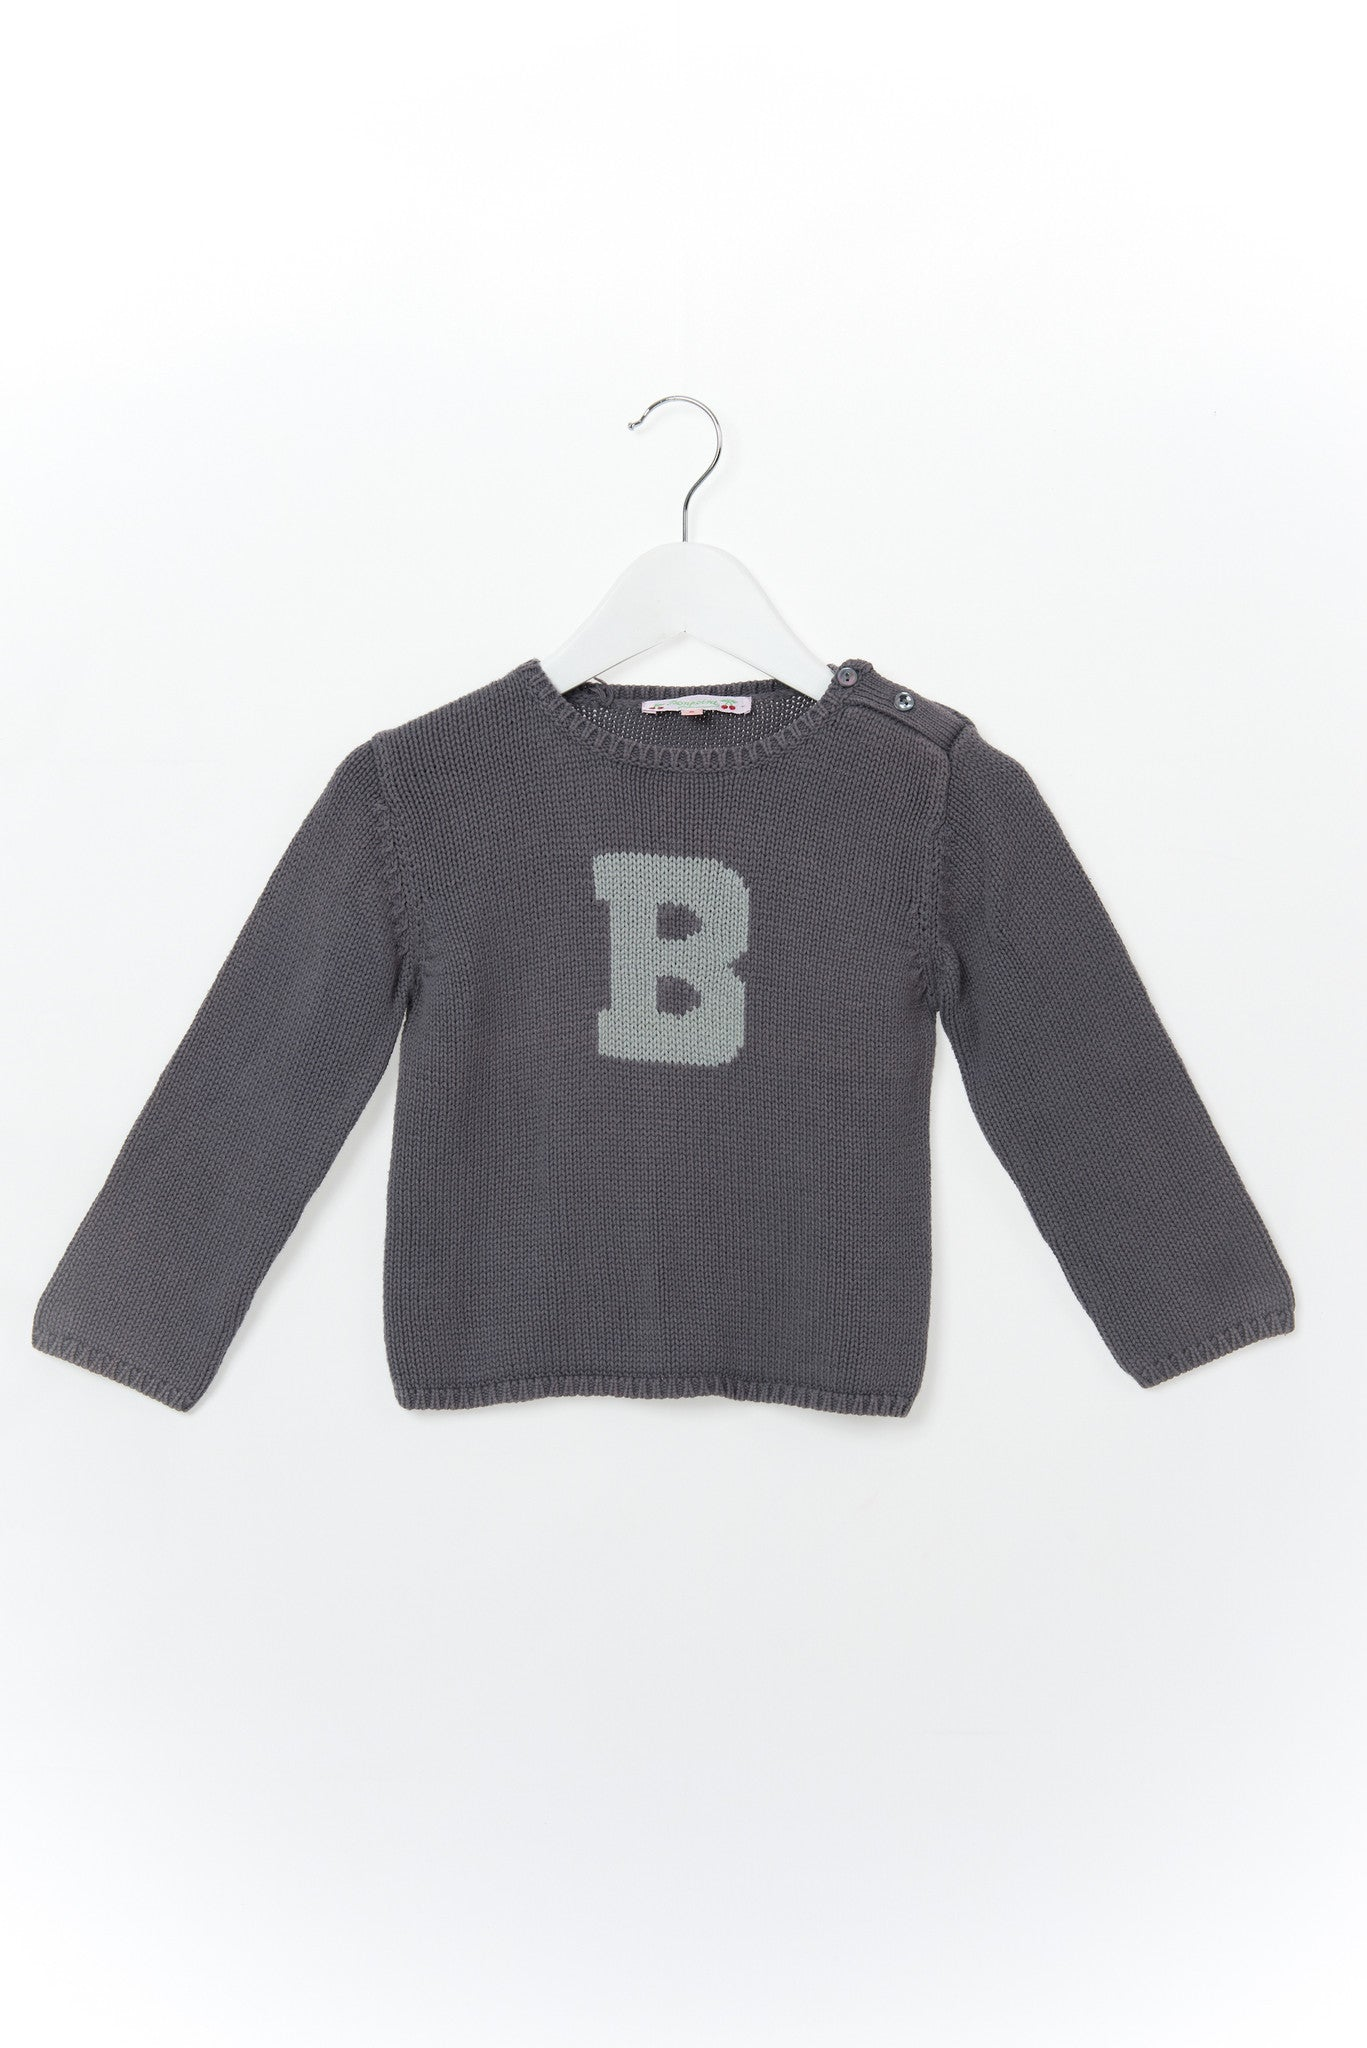 10001270 Bonpoint Kids~Sweater 2T at Retykle